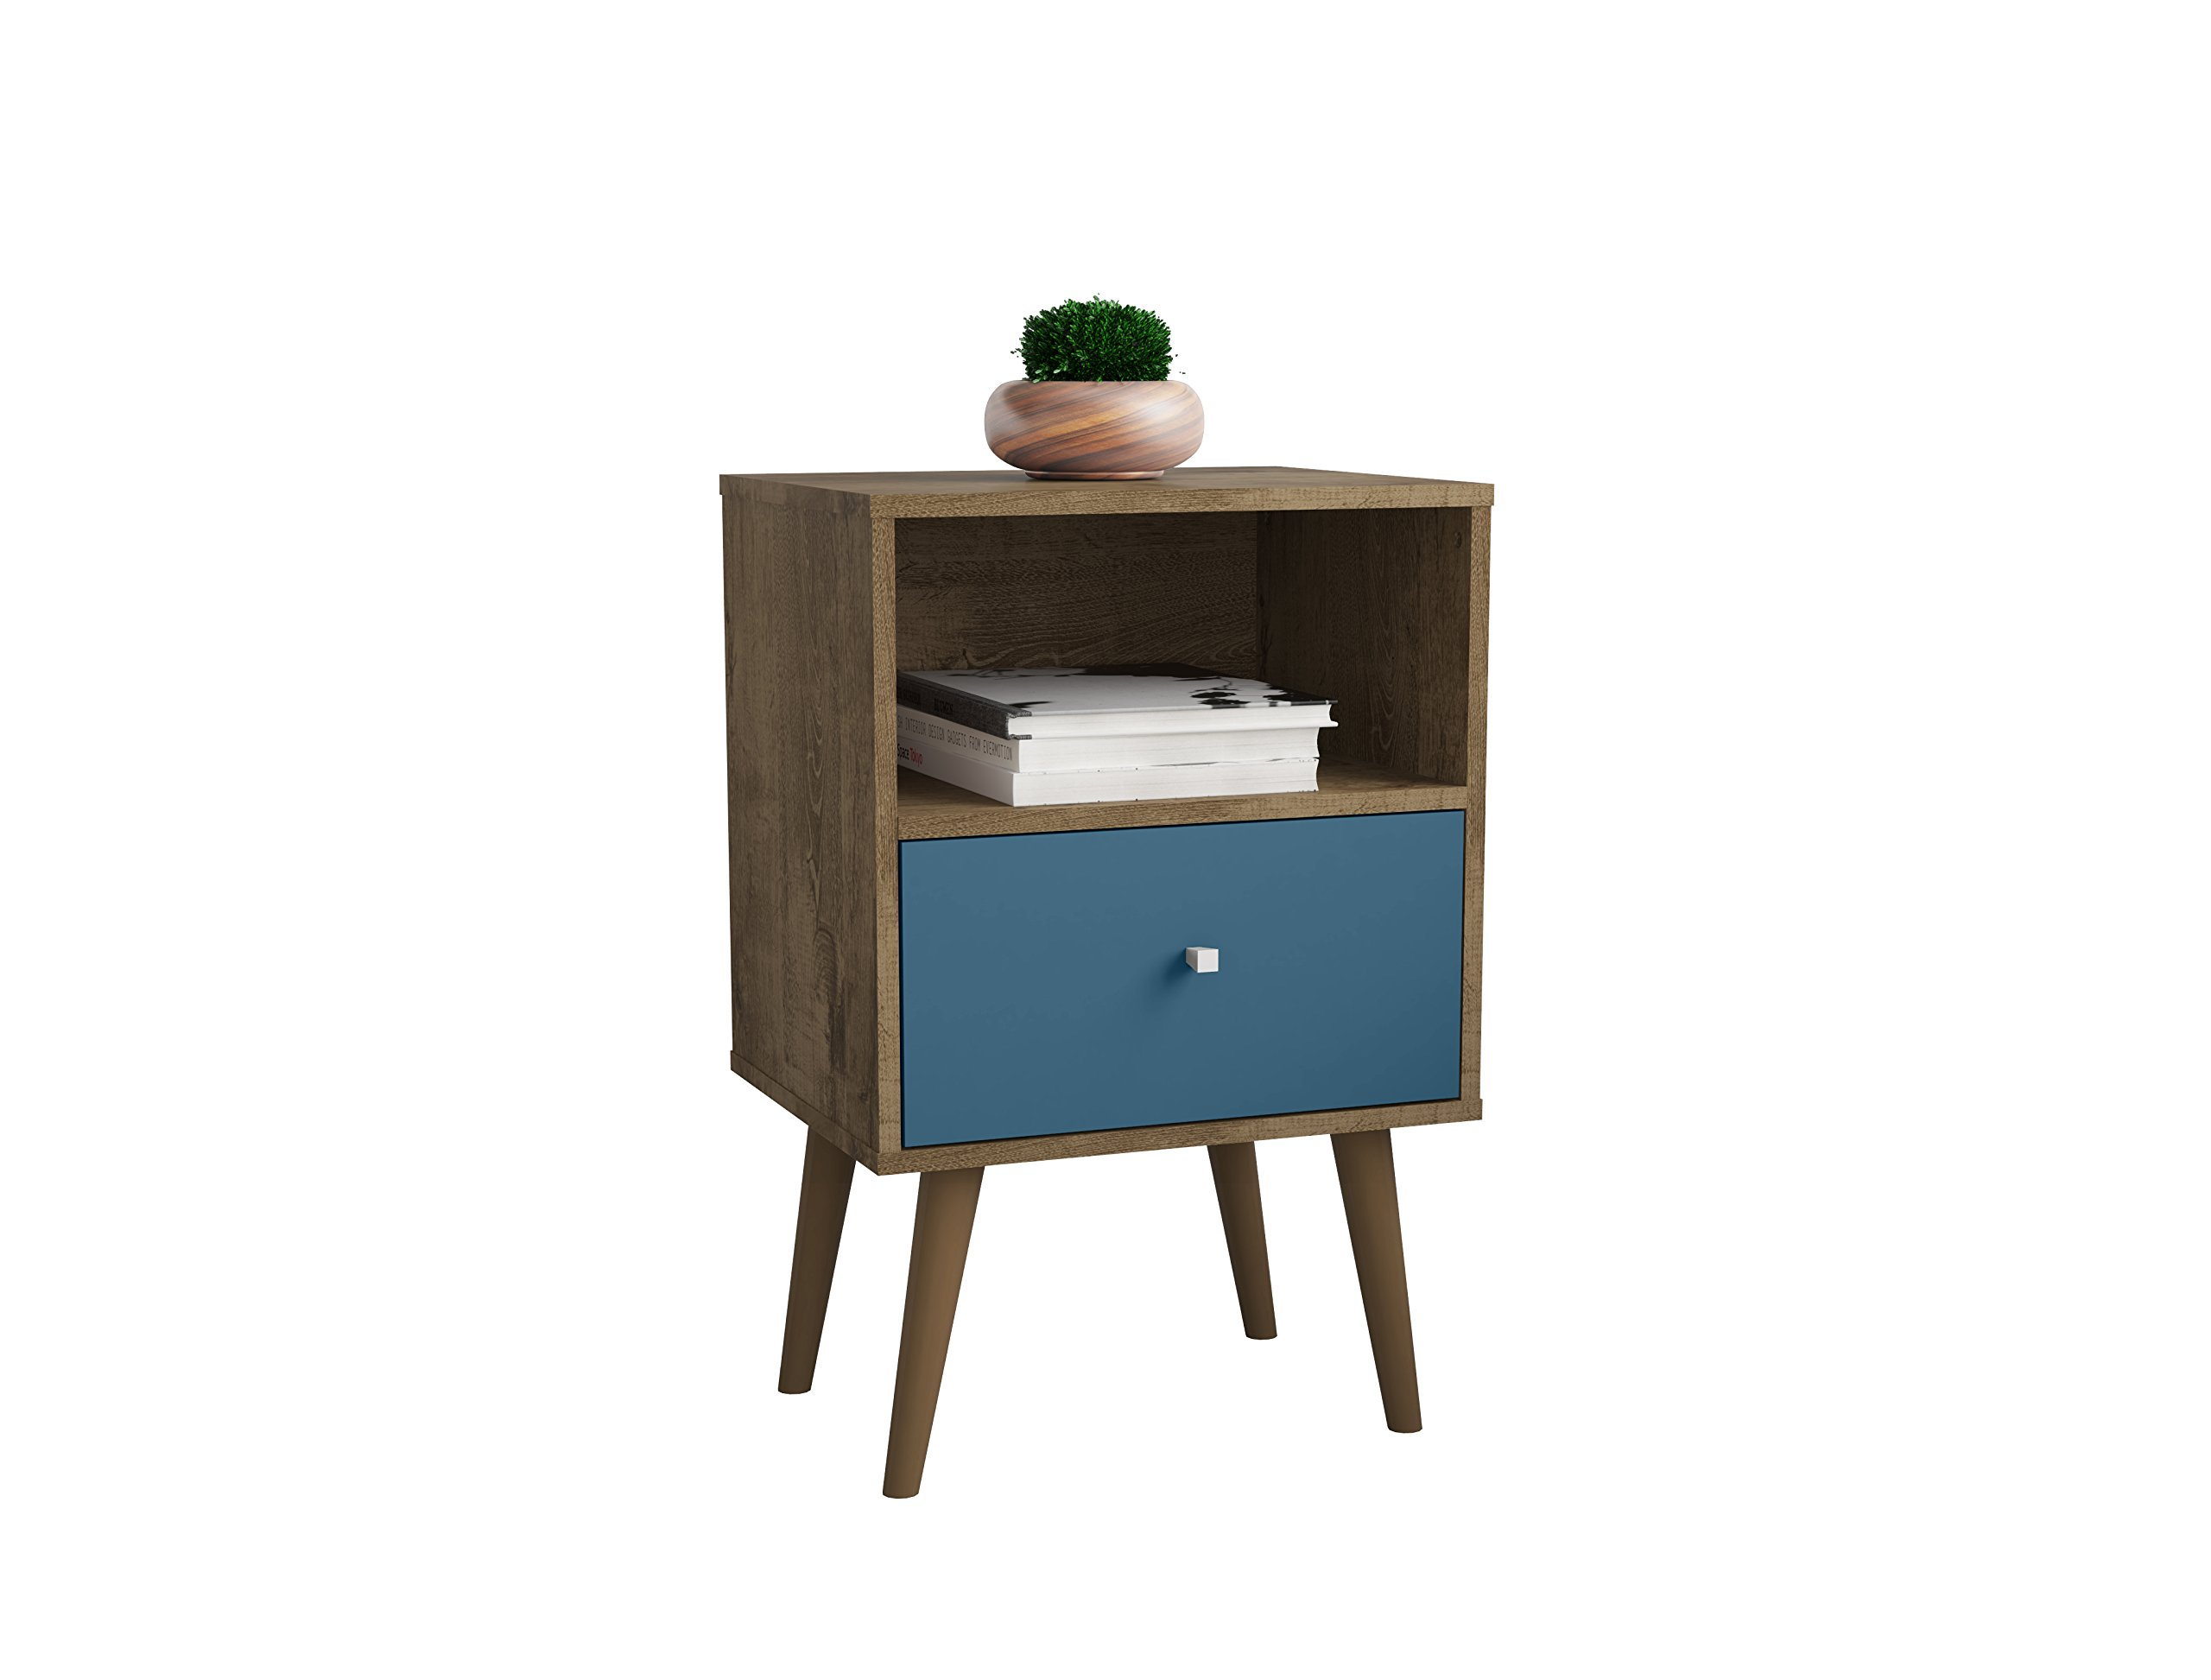 Manhattan Comfort Liberty Modern 1 Drawer Bedroom Nightstand/End Table, Rustic Brown/Aqua Blue by Manhattan Comfort